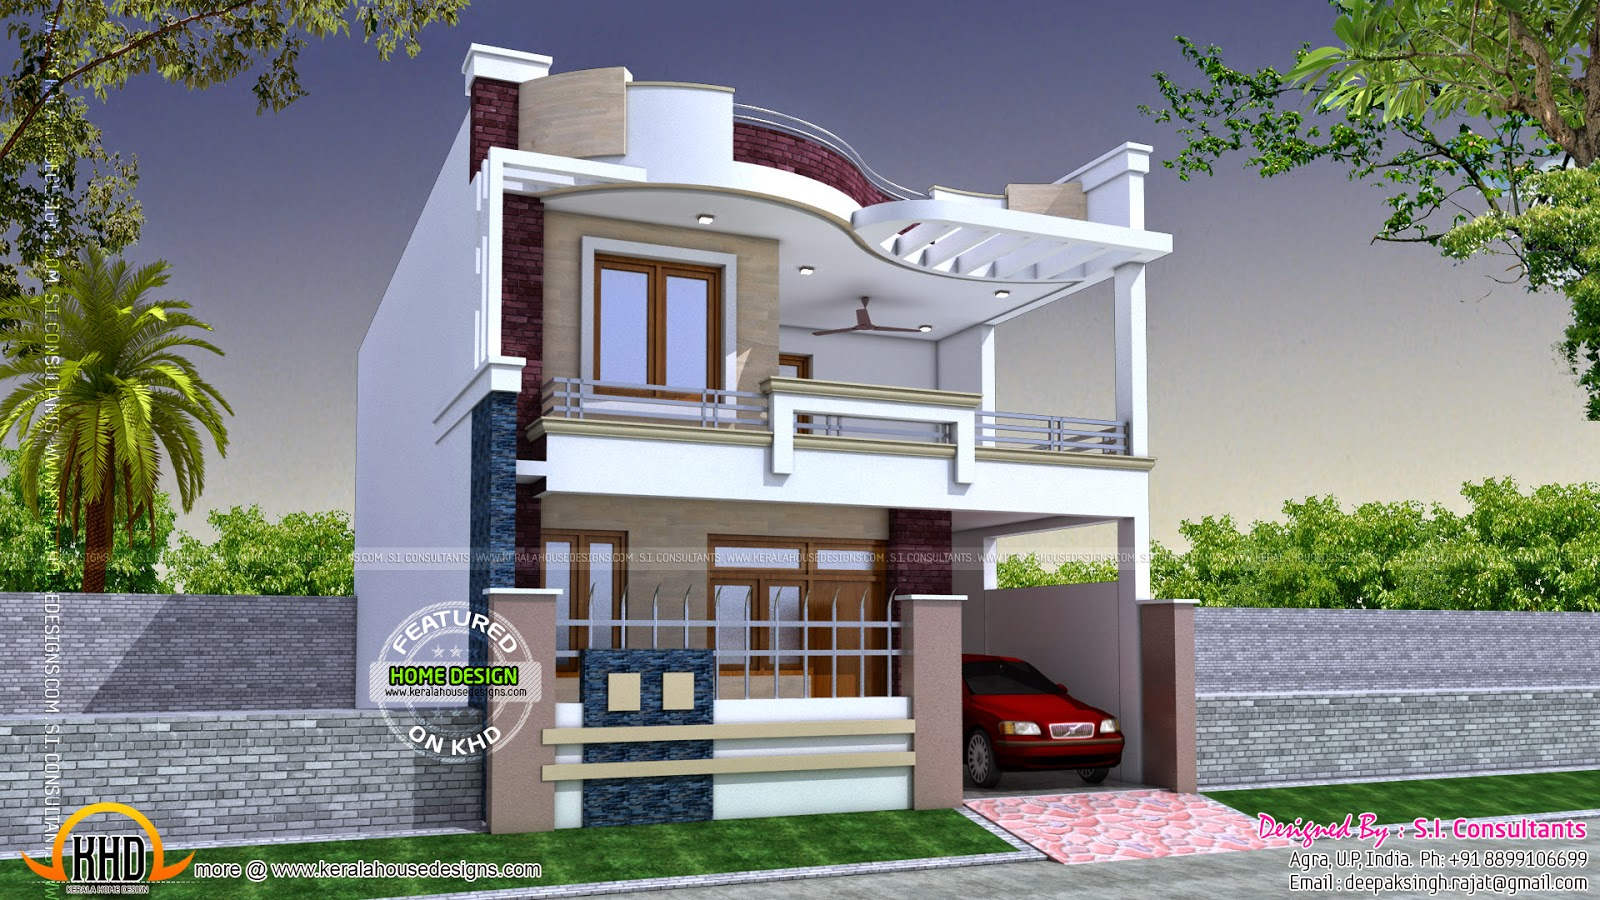 Modern indian home design kerala home design and floor plans for Modern house designs and floor plans